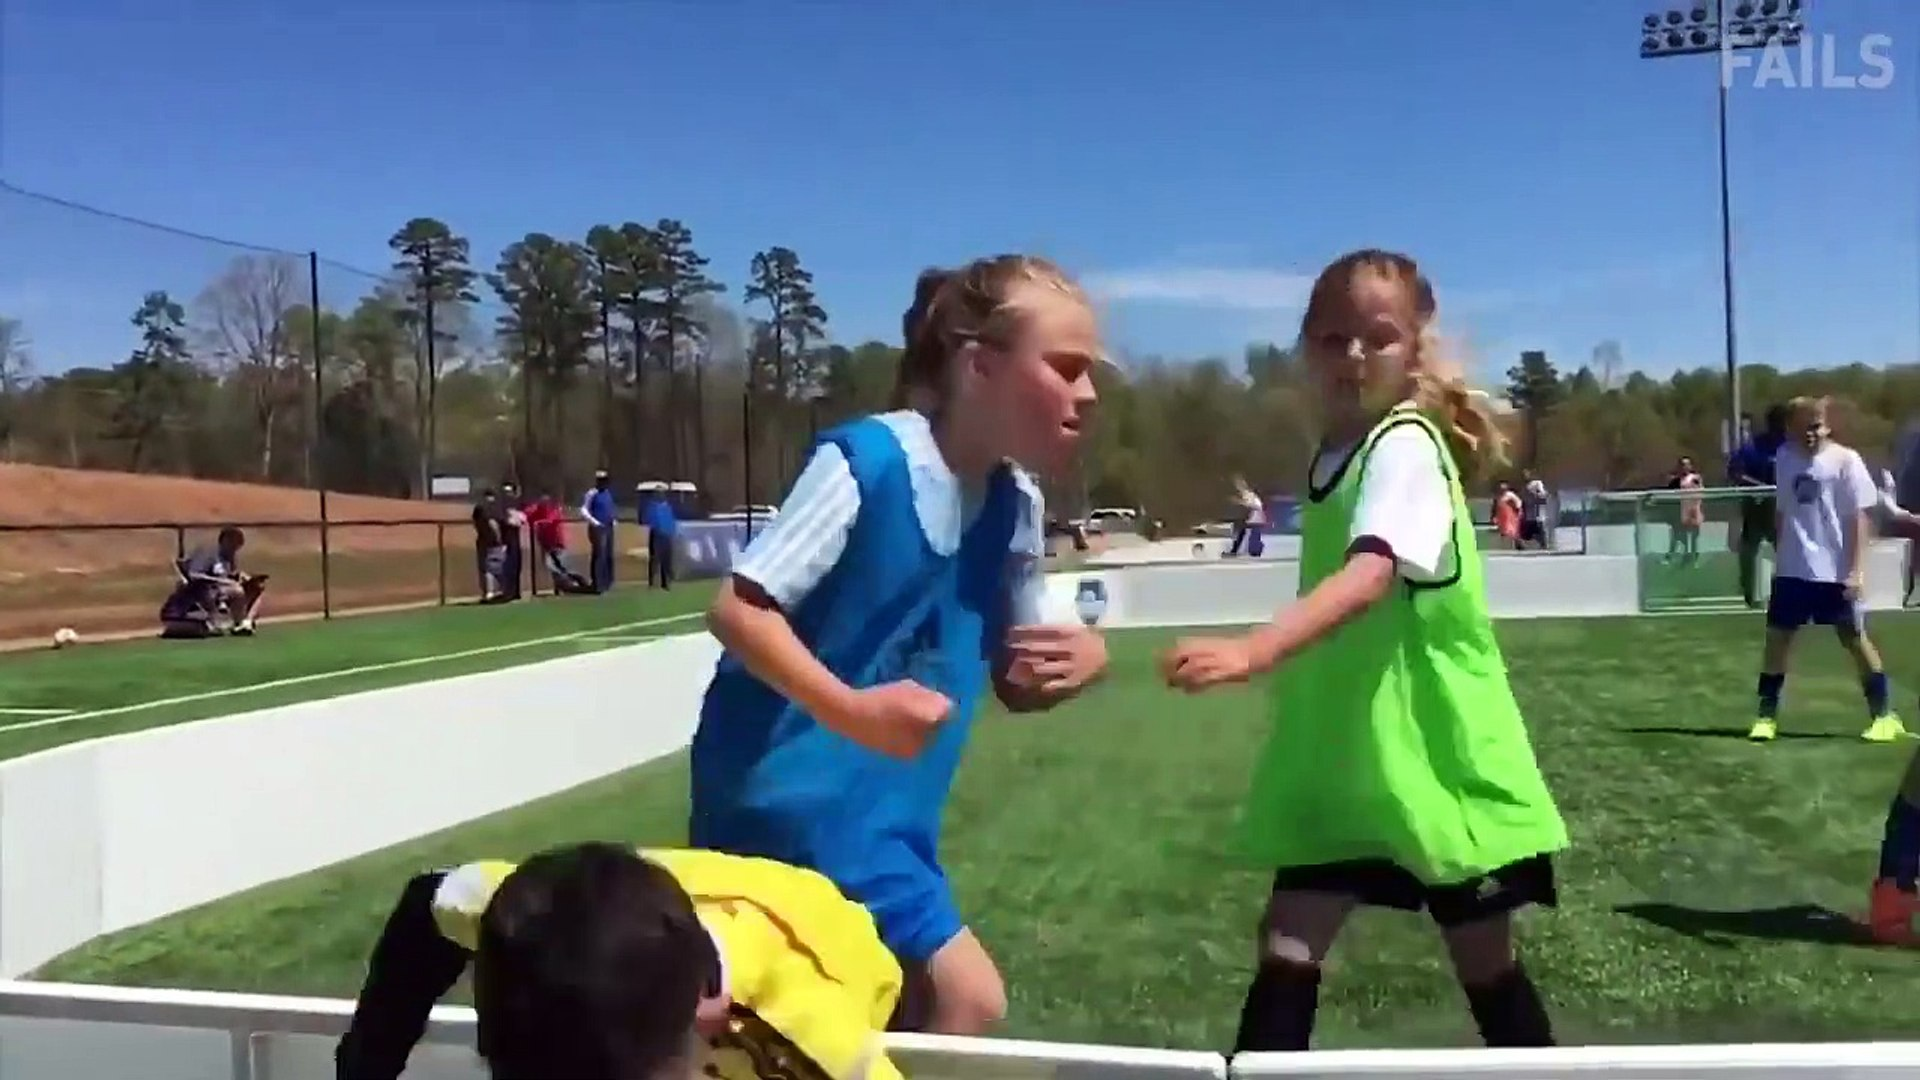 Try Not To Laugh Funny Kids Fails Videos - Funny Kids Sport Fails Mar 2019